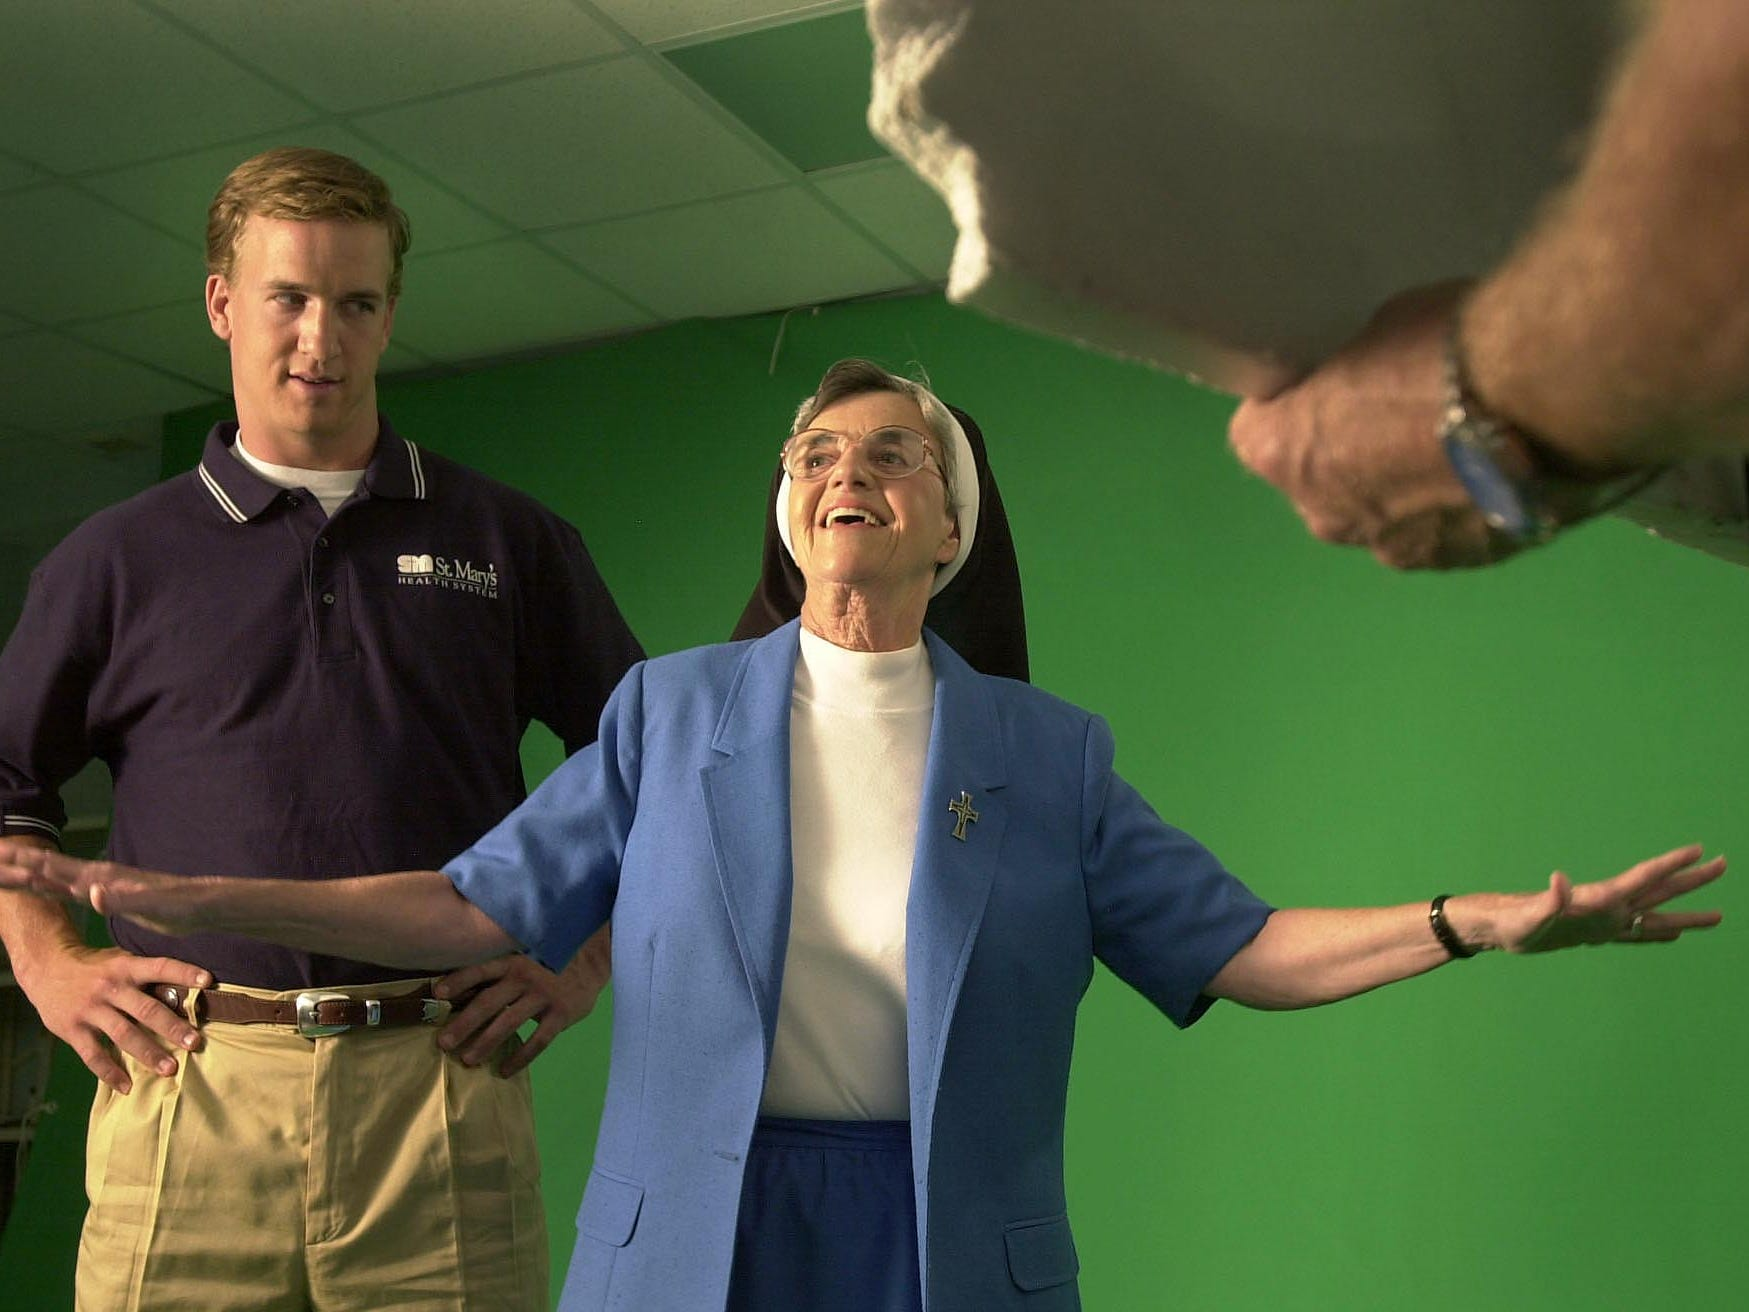 Sister Maris Stella films a commercial for St. Mary's Health System with Peyton Manning on Nov. 13, 1999.